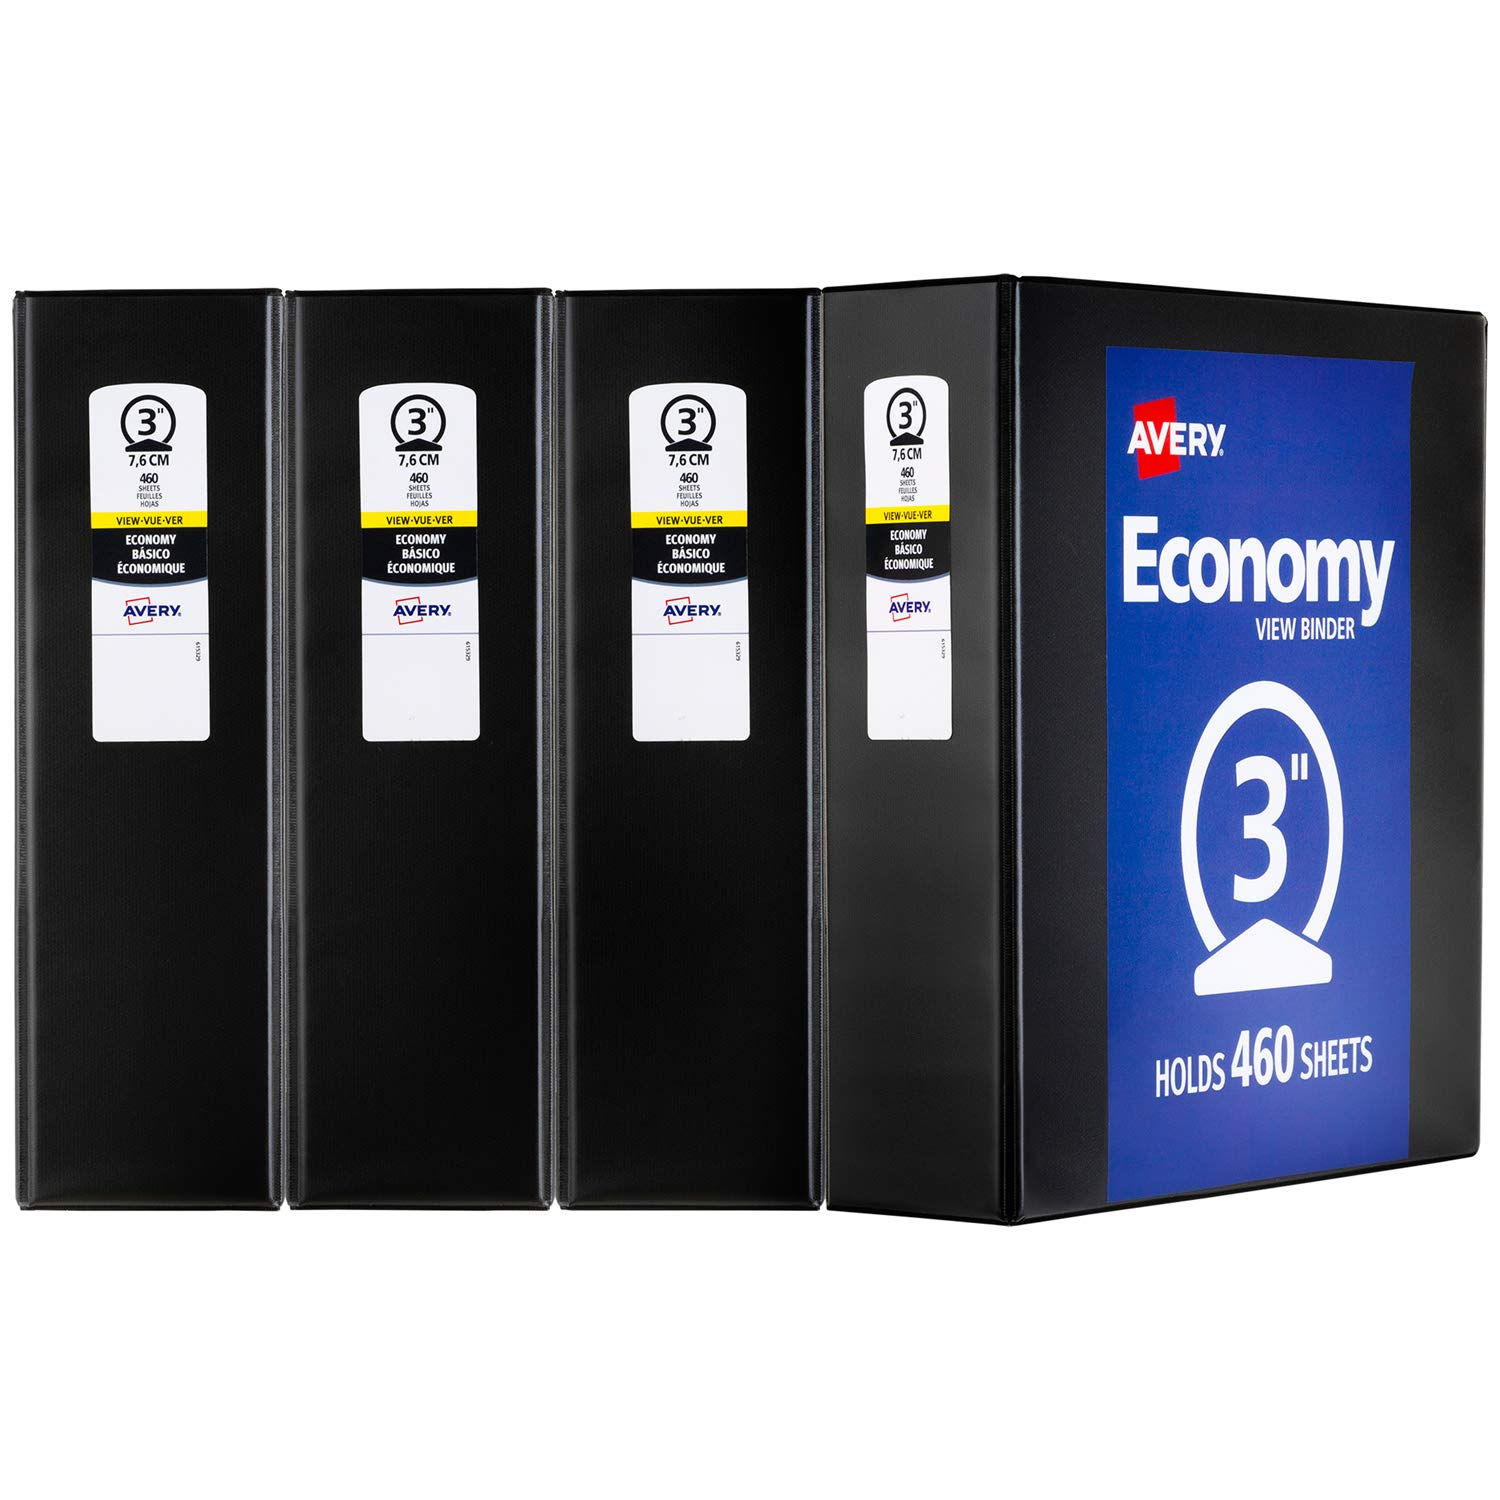 Avery Economy View Binder, 3 Round Rings, 375-Sheet Capacity, 4 Binders, Black (03361) 3 Round Rings Avery Products Corporation